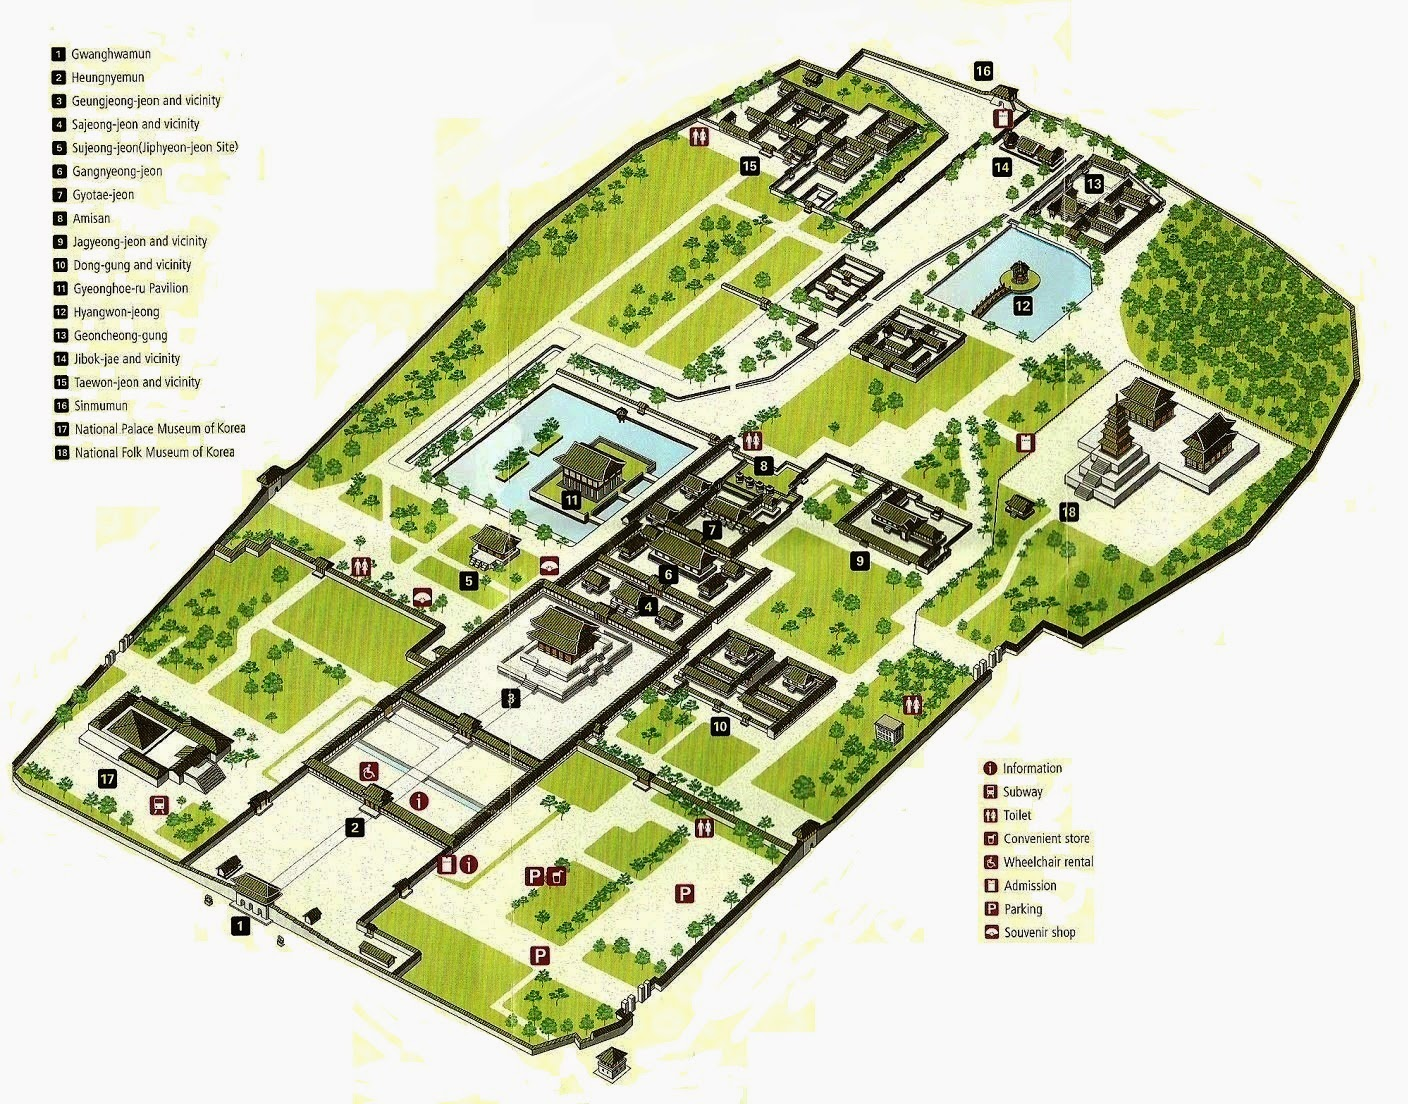 map of Gyeongbokgung Palace, Gyeongbokgung Palace map, seoul palace map, map seoul palace, seoul tourist attraction, what to do in seoul, kids in seoul at winter, winter attractions in seoul, where to go in seoul